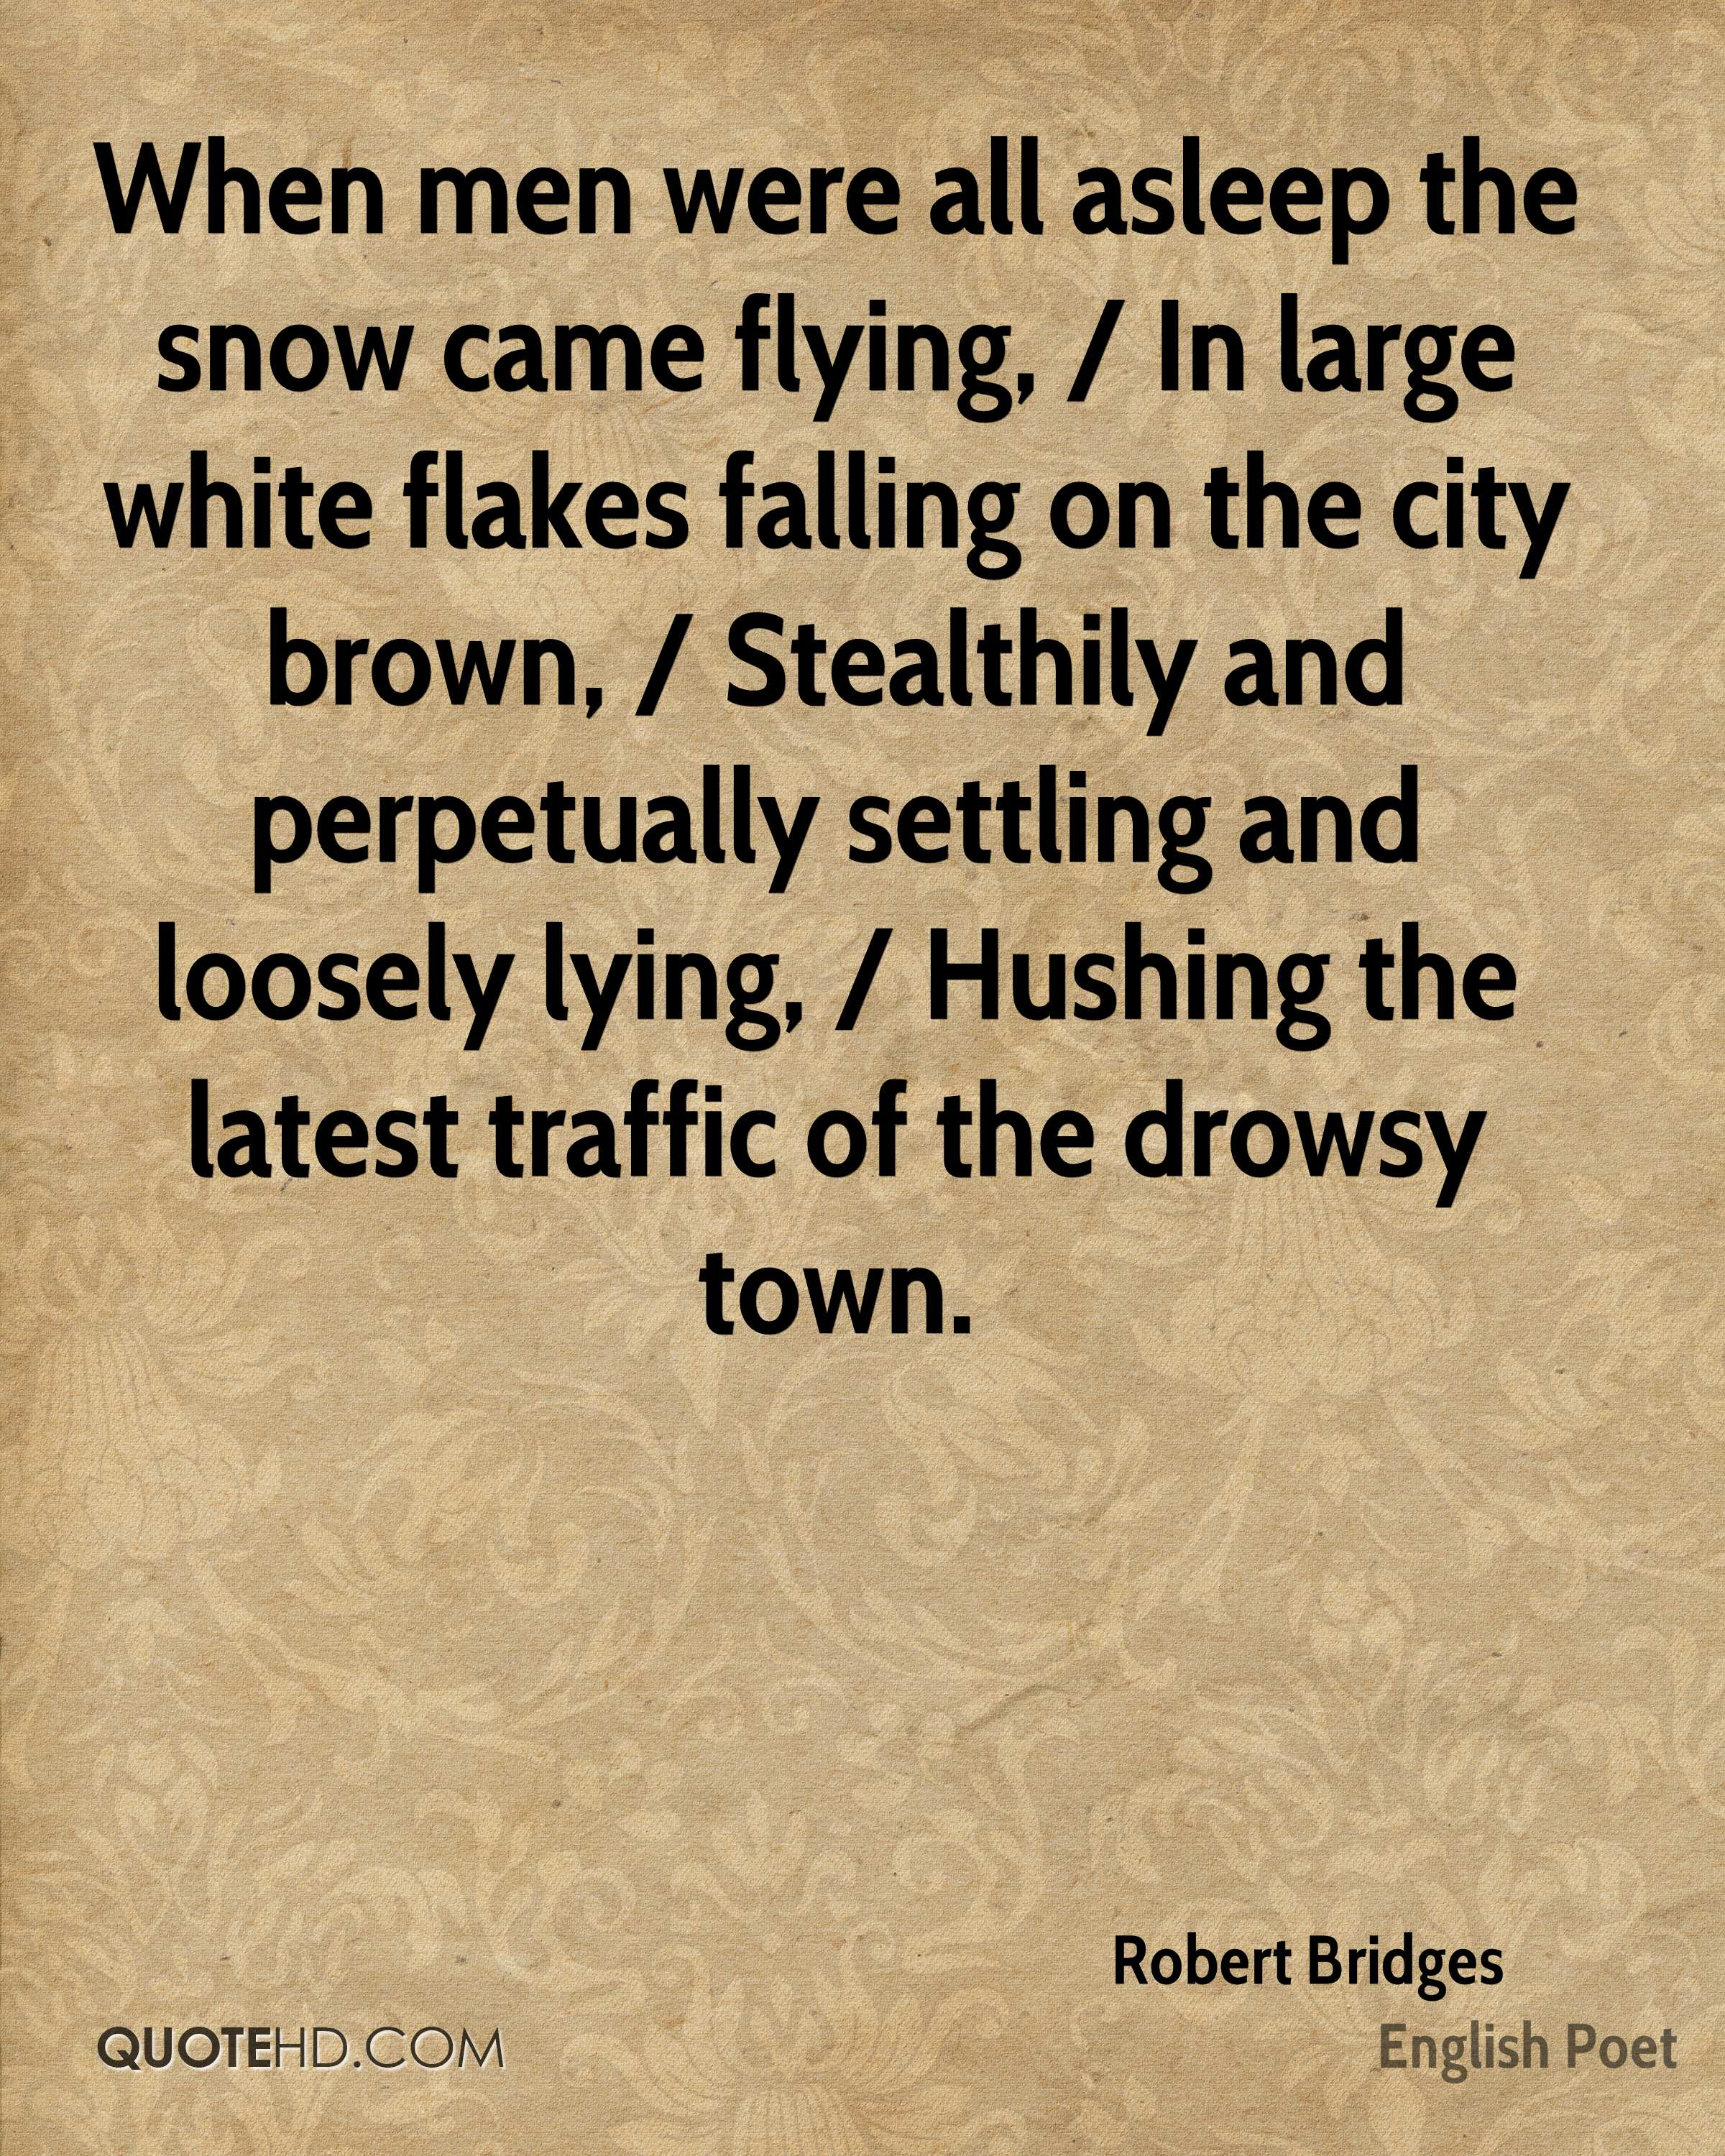 When men were all asleep the snow came flying, / In large white flakes falling on the city brown, / Stealthily and perpetually settling and loosely lying, / Hushing the latest traffic of the drowsy town.